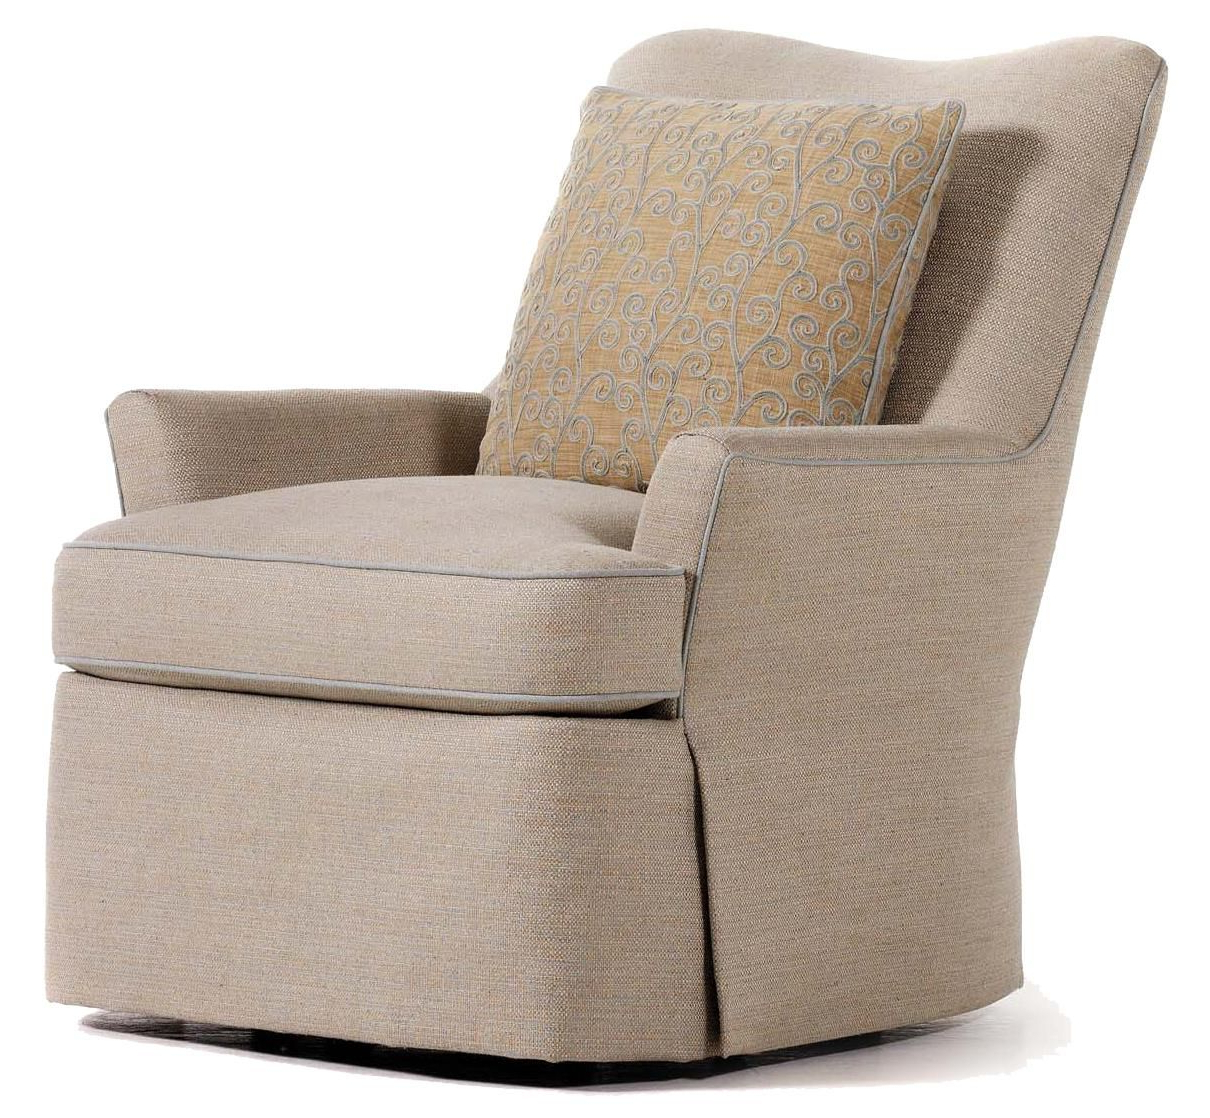 Katrina Beige Swivel Glider Chairs For Popular Durban Swivel Rockerjessica Charles (View 4 of 20)